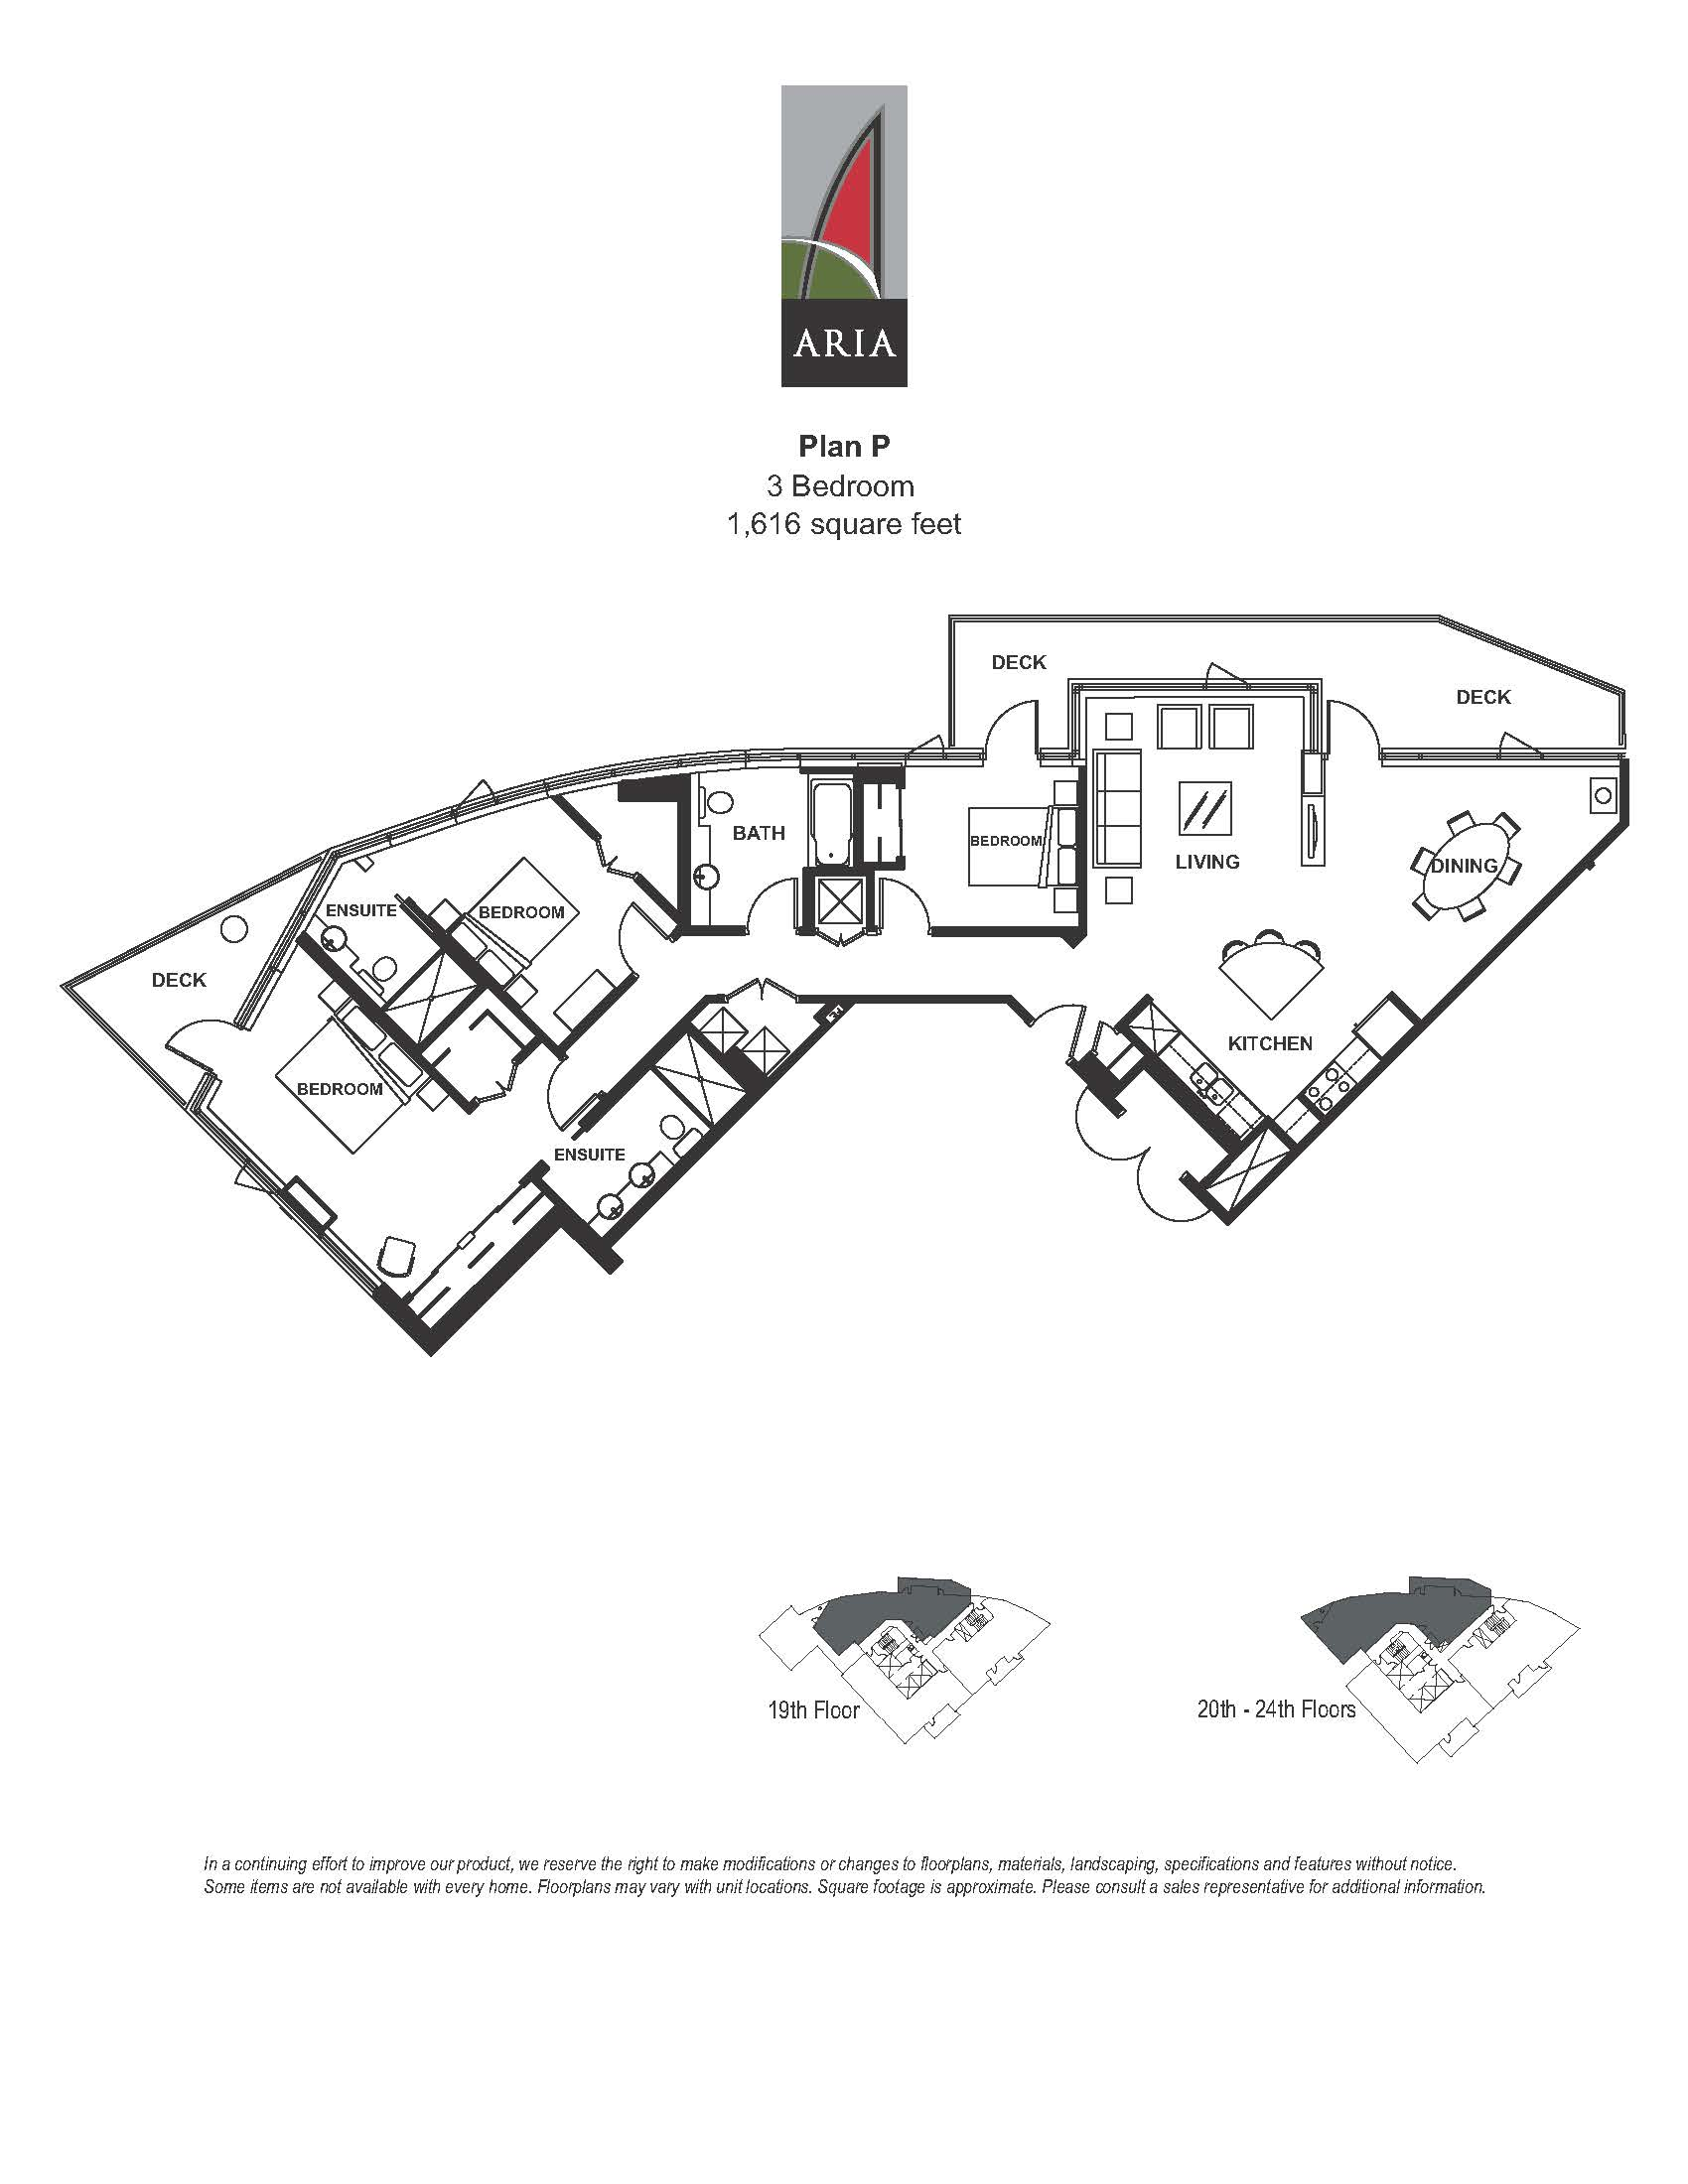 Aria 3 Bedroom - Plan P